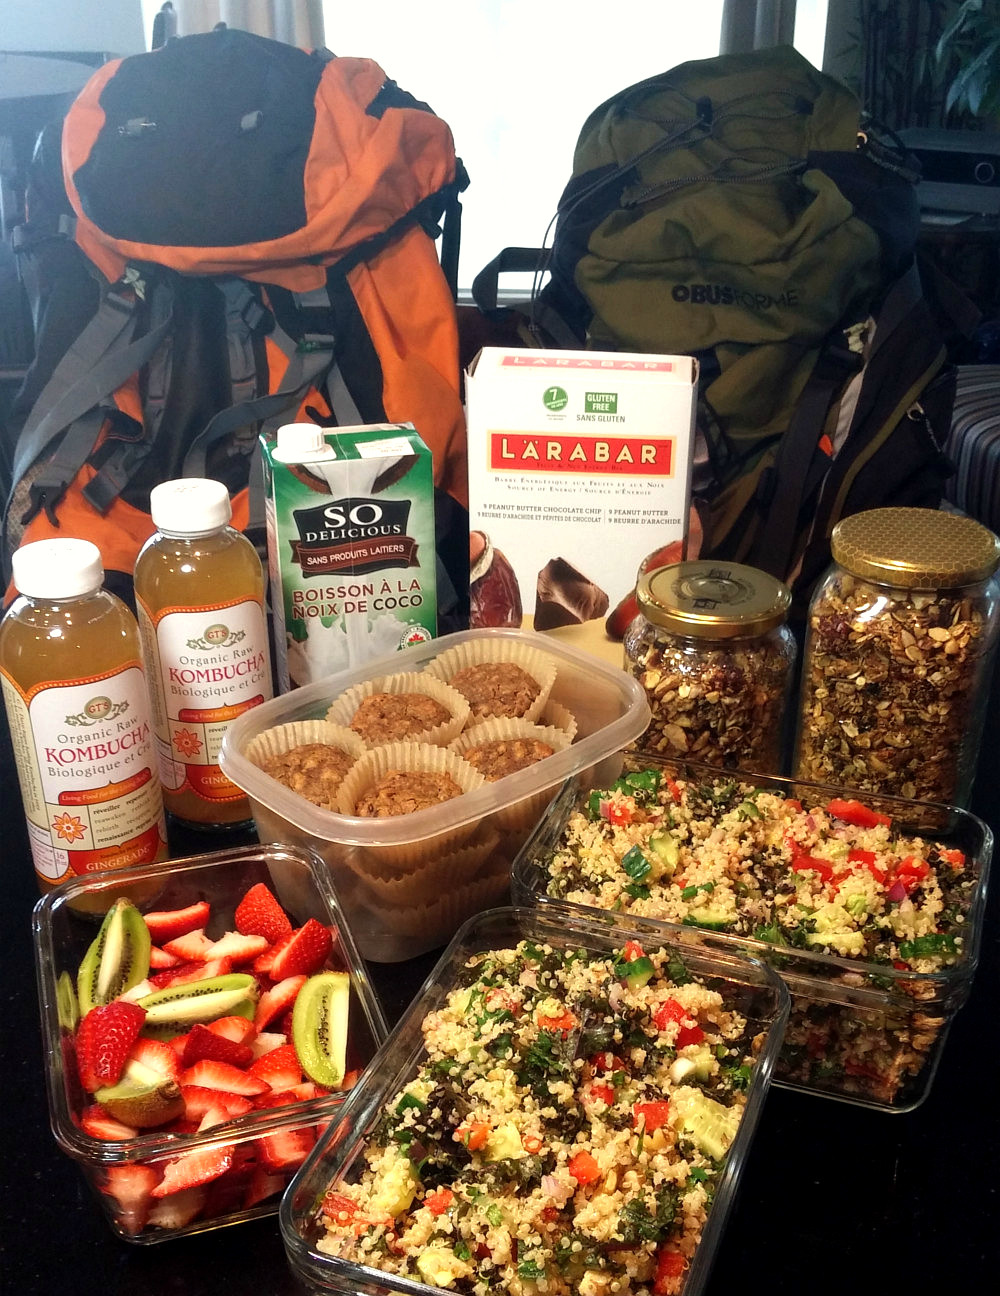 Road Trip Snacks Healthy  Your Healthy Guide to Road Trip Snacks and Meals